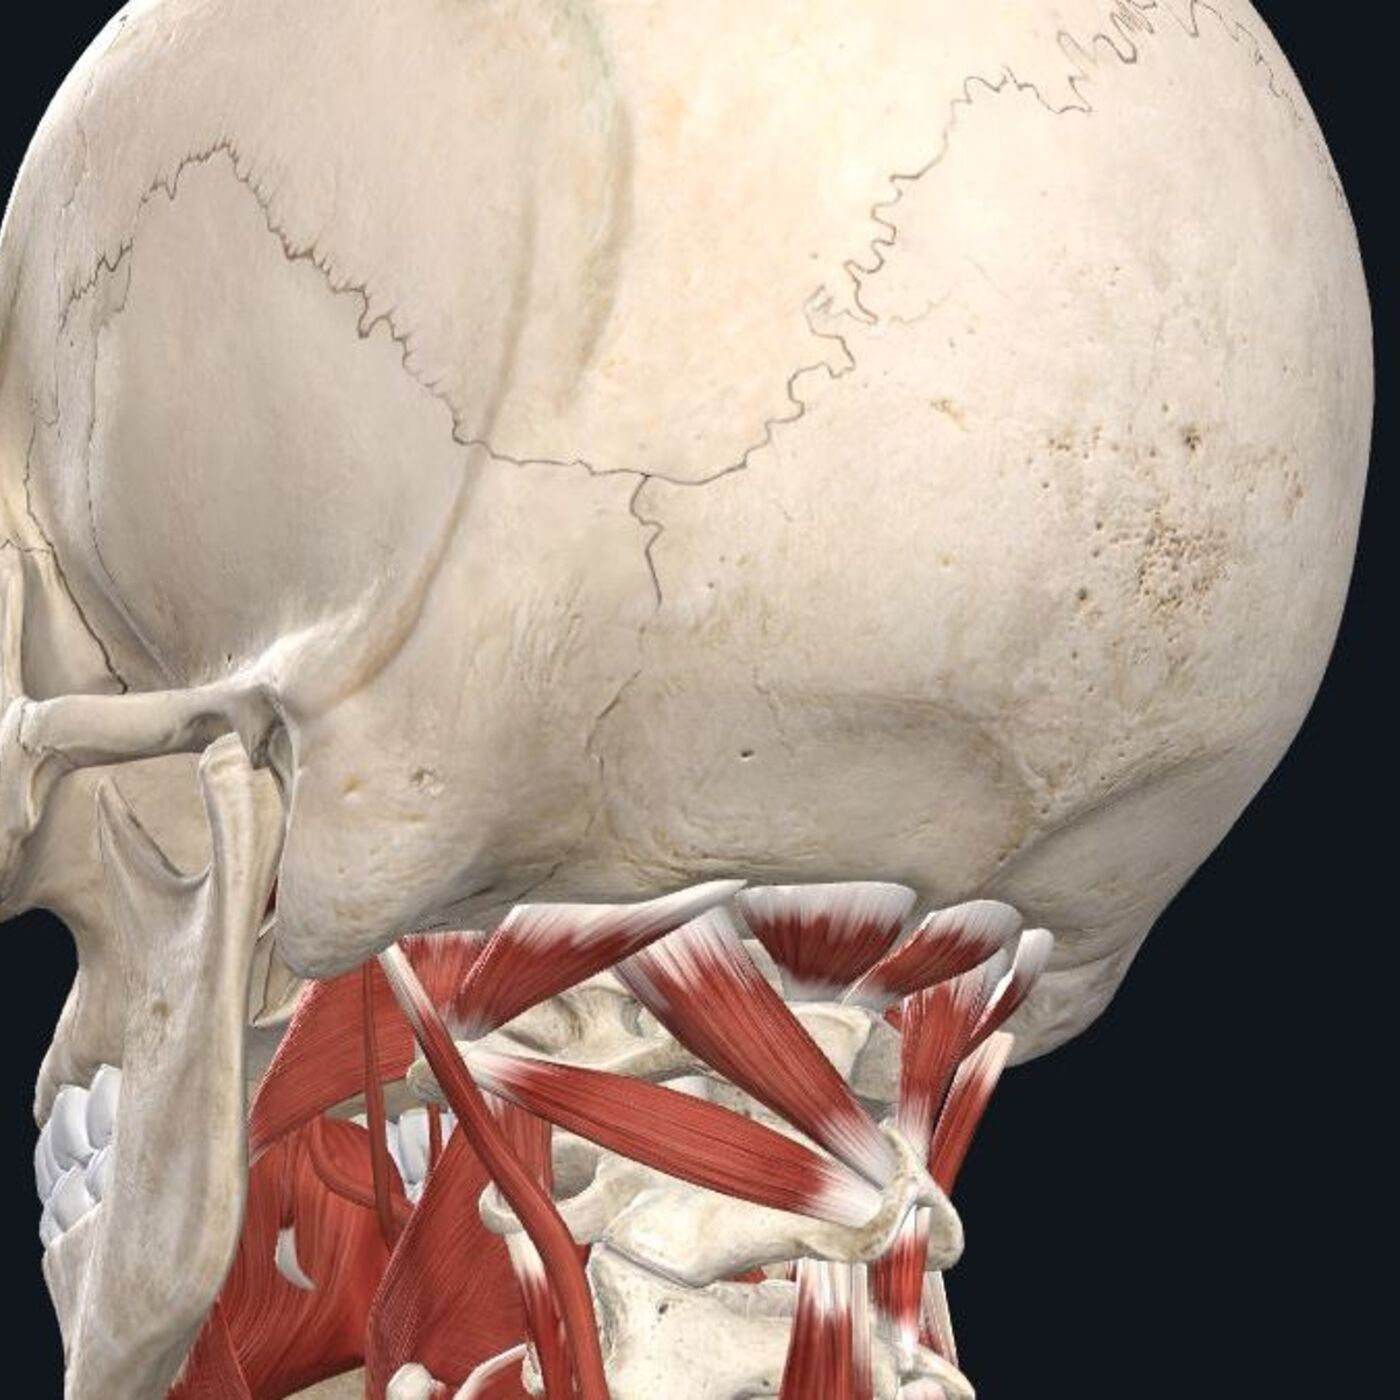 Muscle Control of the Upper Cervical Spine